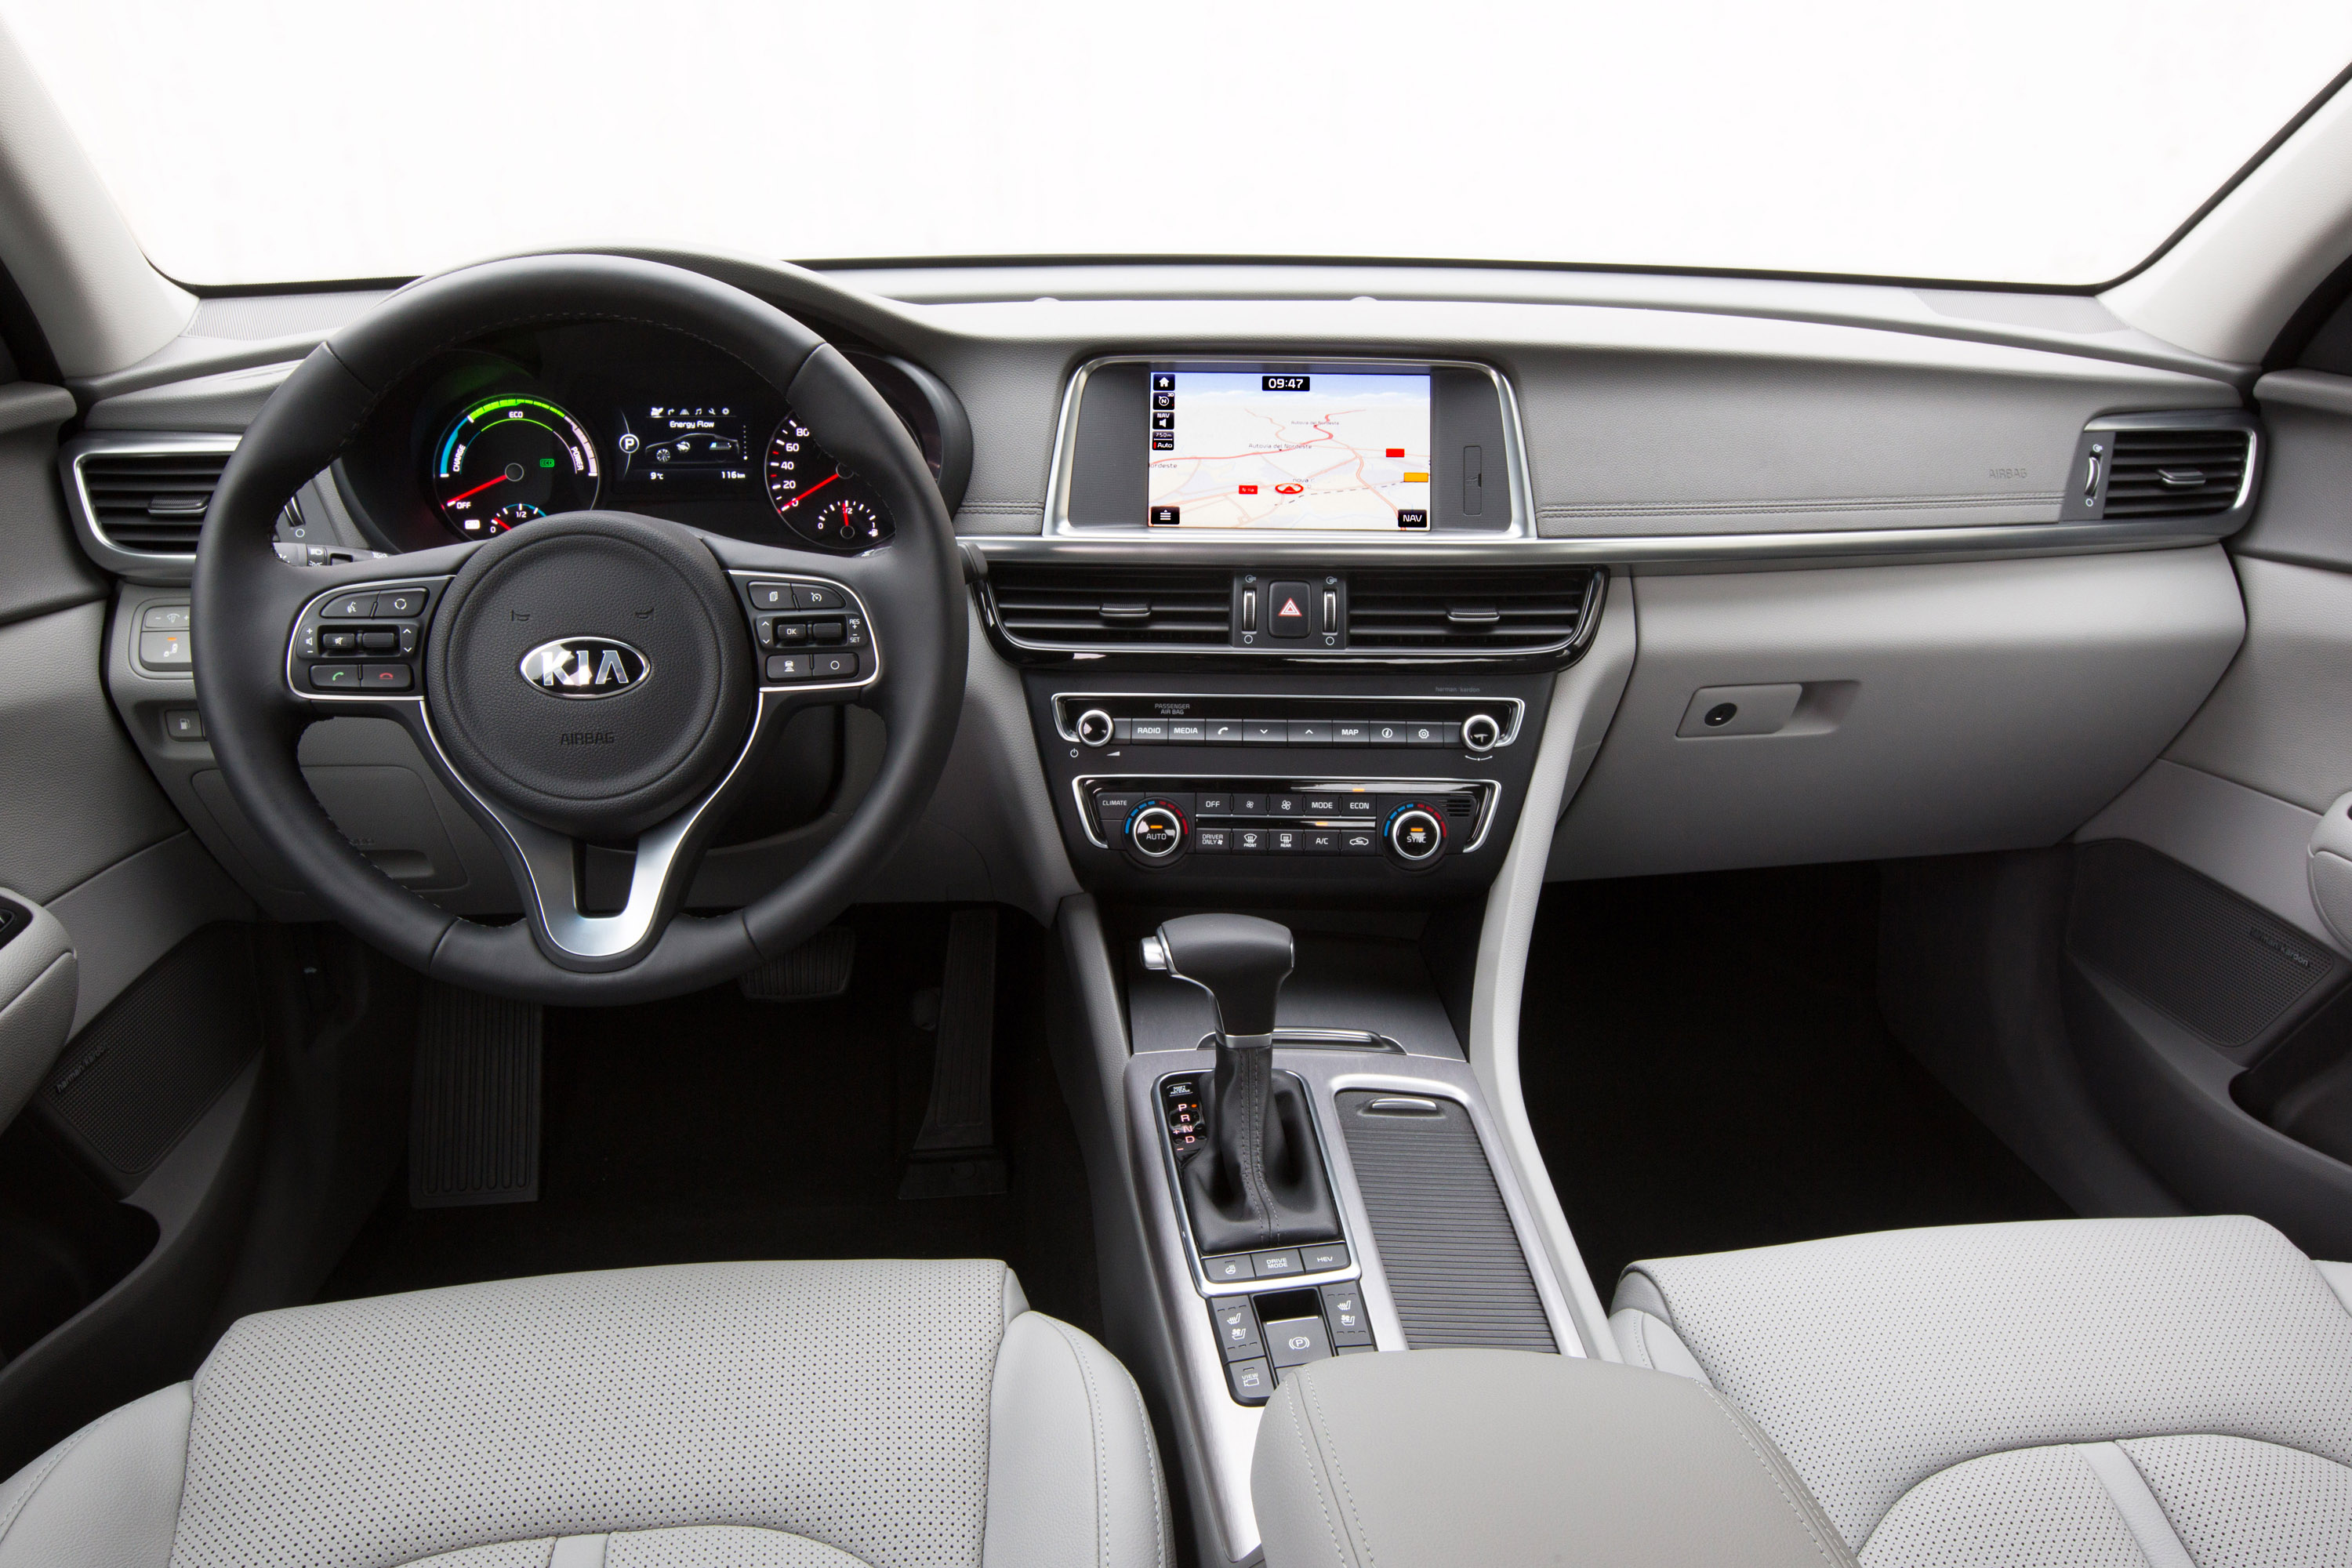 Hybrid and Electric Car News and Reviews - Green Car Reports